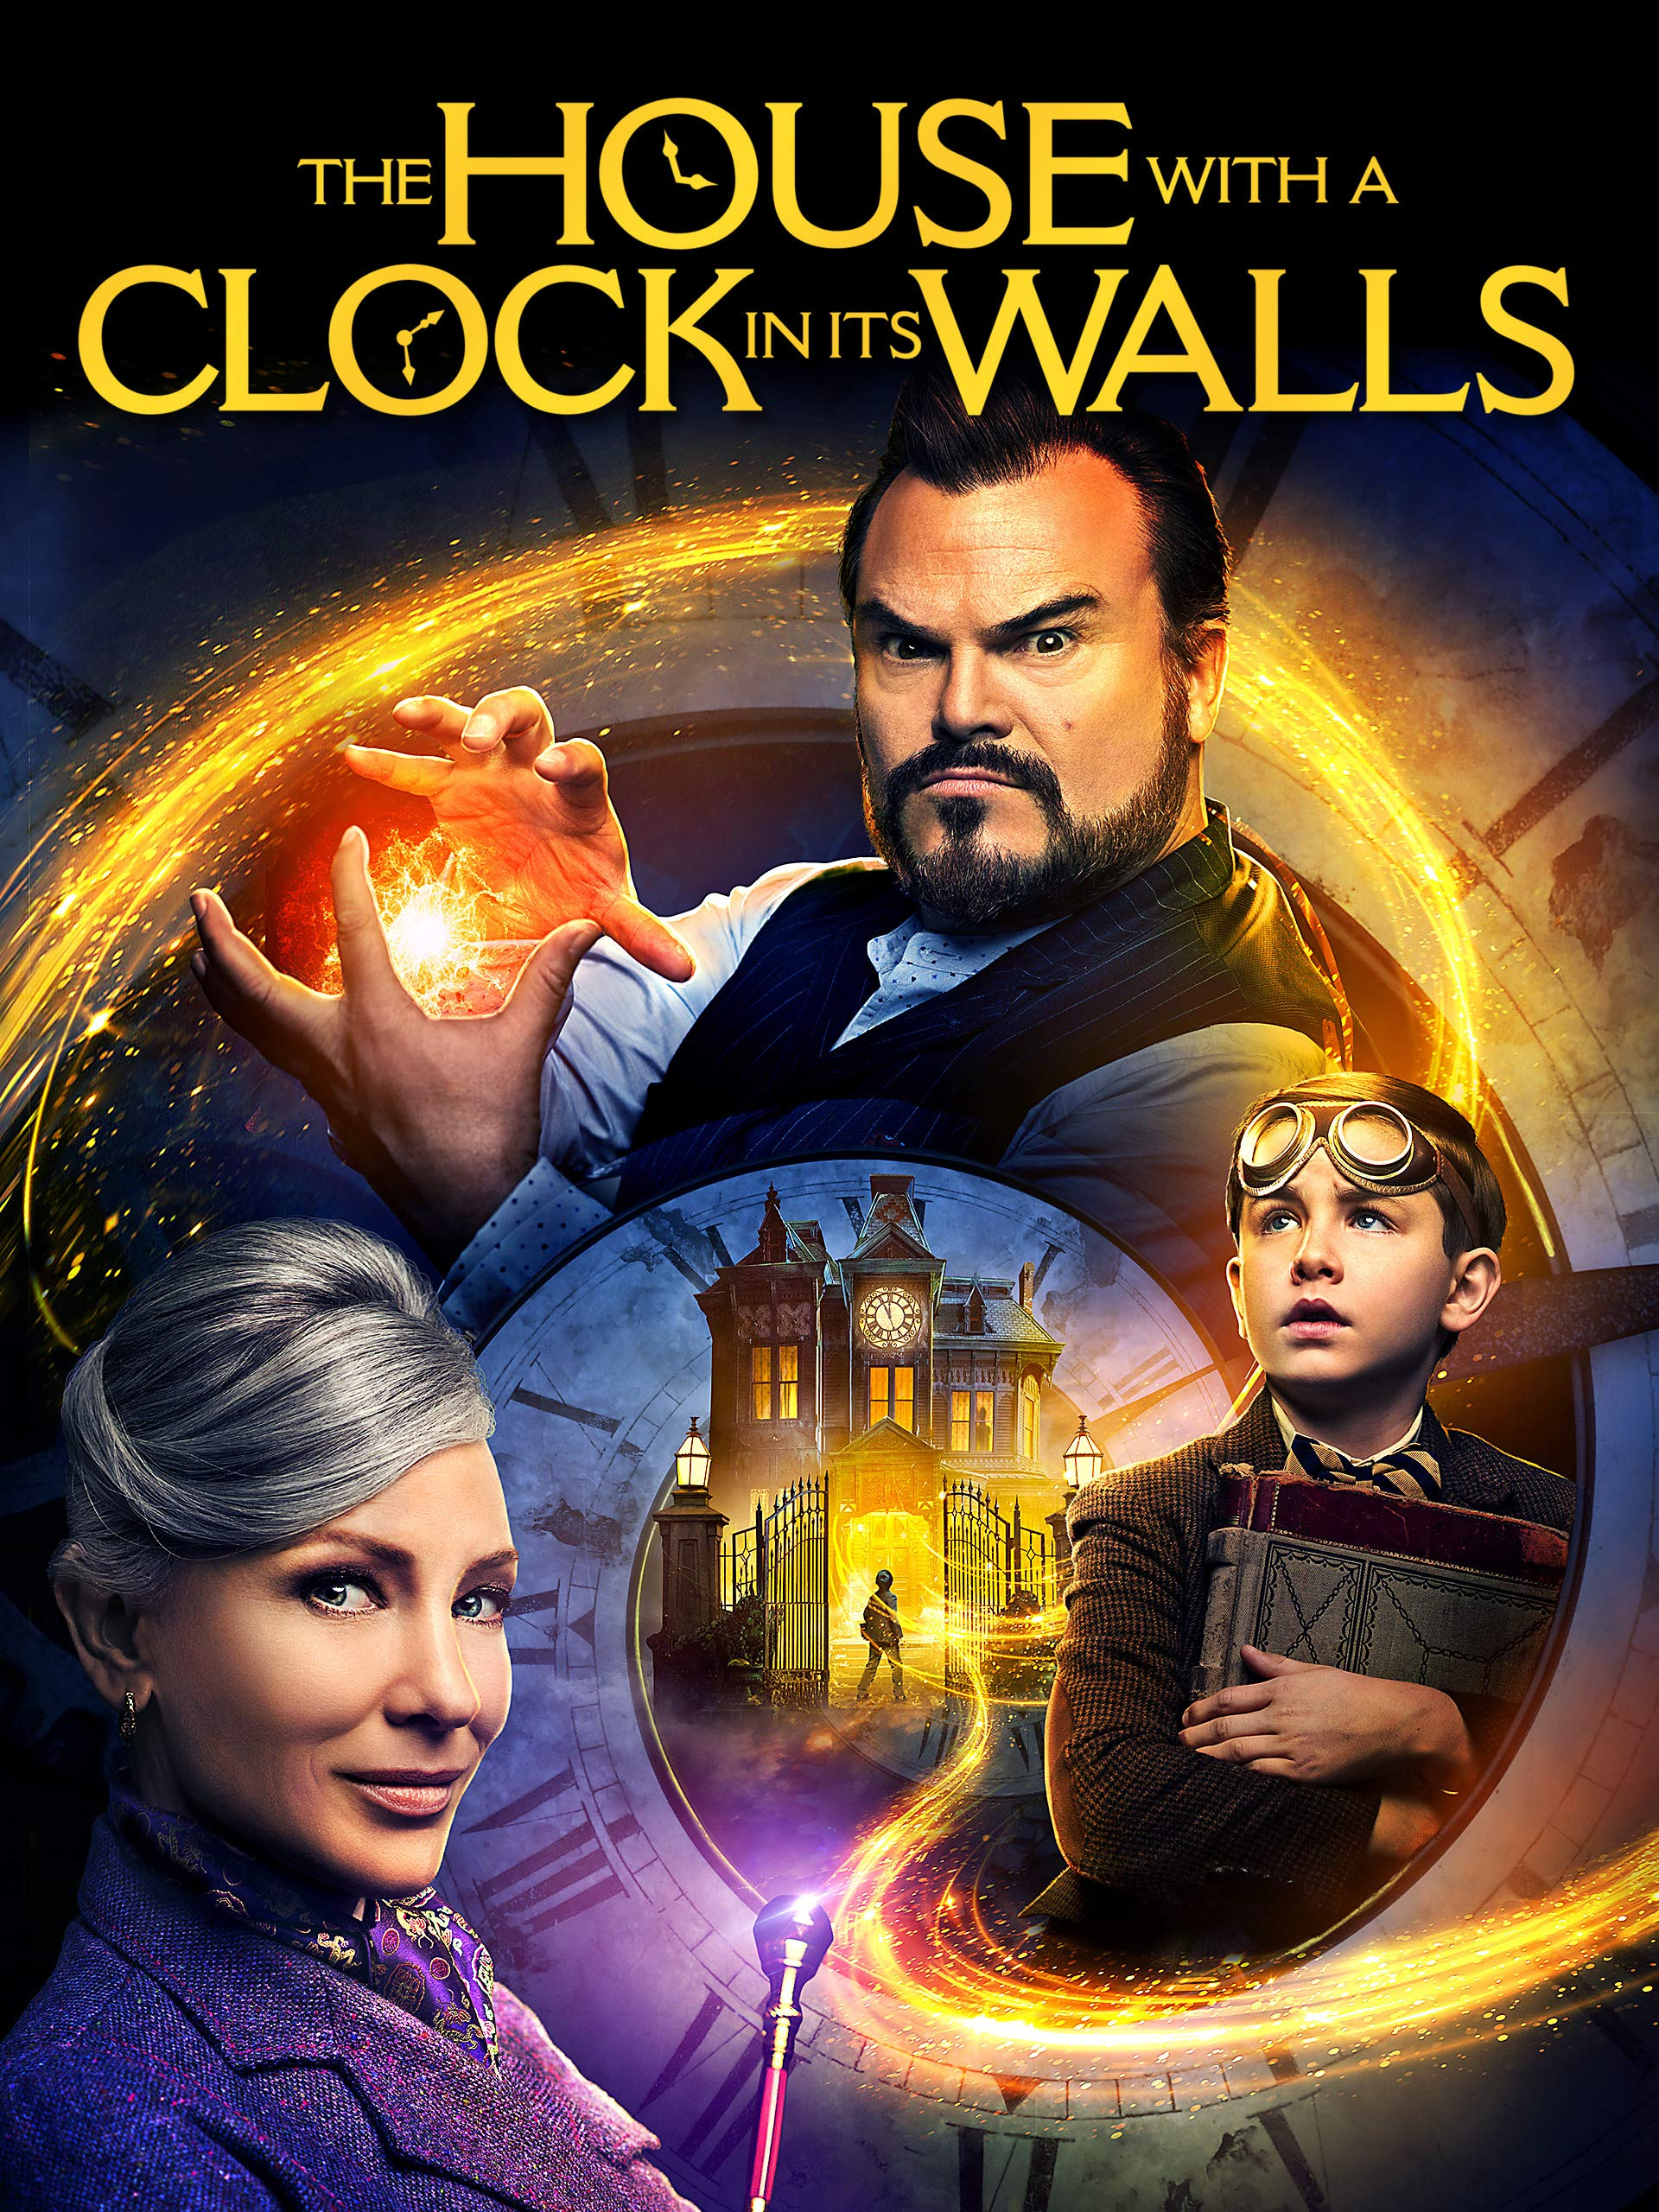 Summer Movie: The House with a Clock in its Walls